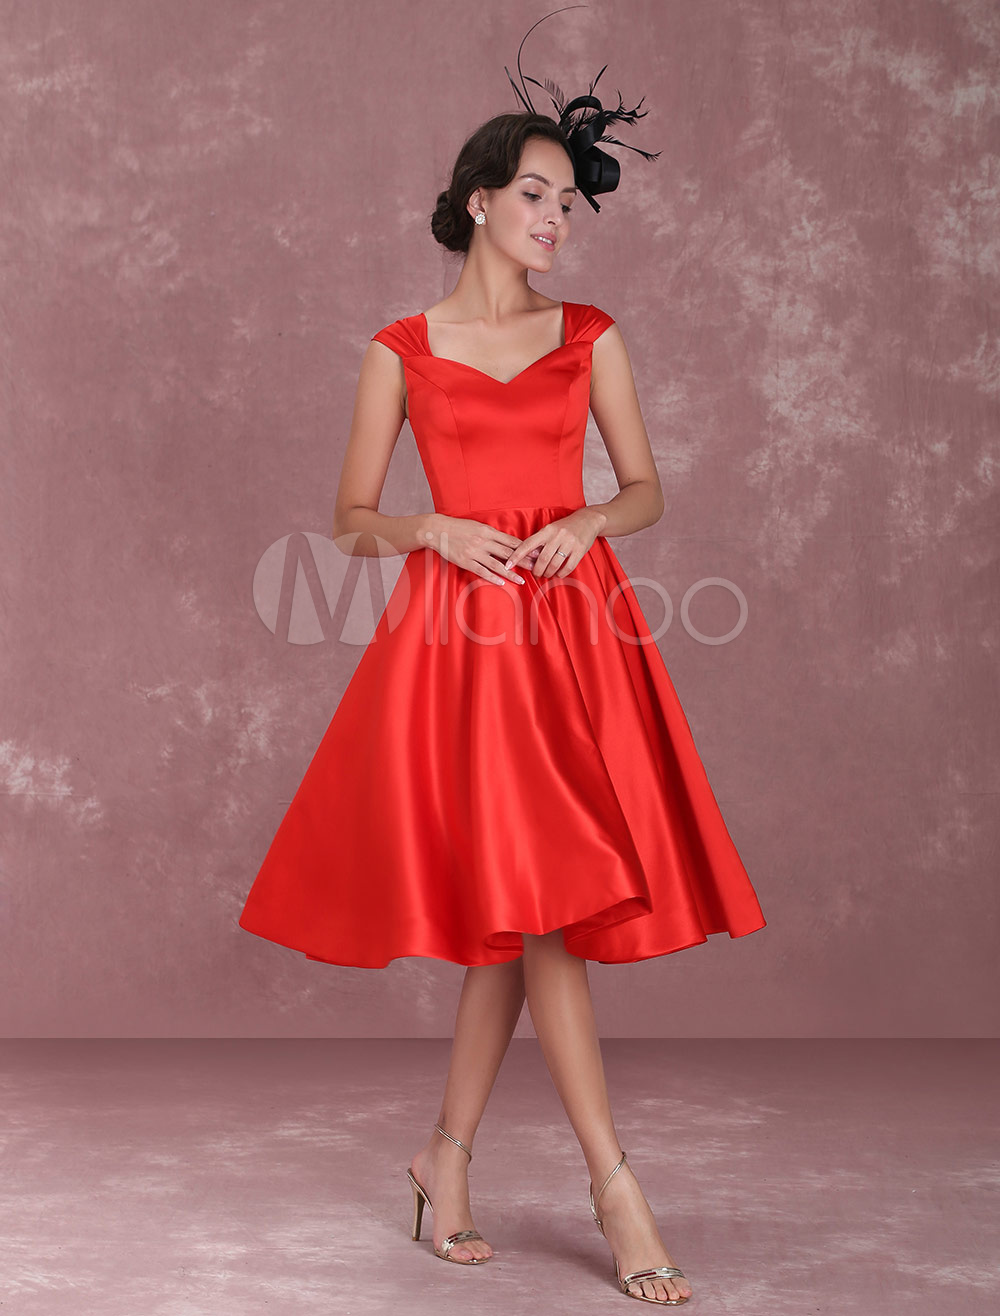 Red Cocktail Dresses 1950's Vintage Queen Anne Neckline Pleated A Line Party Dresses (Wedding) photo